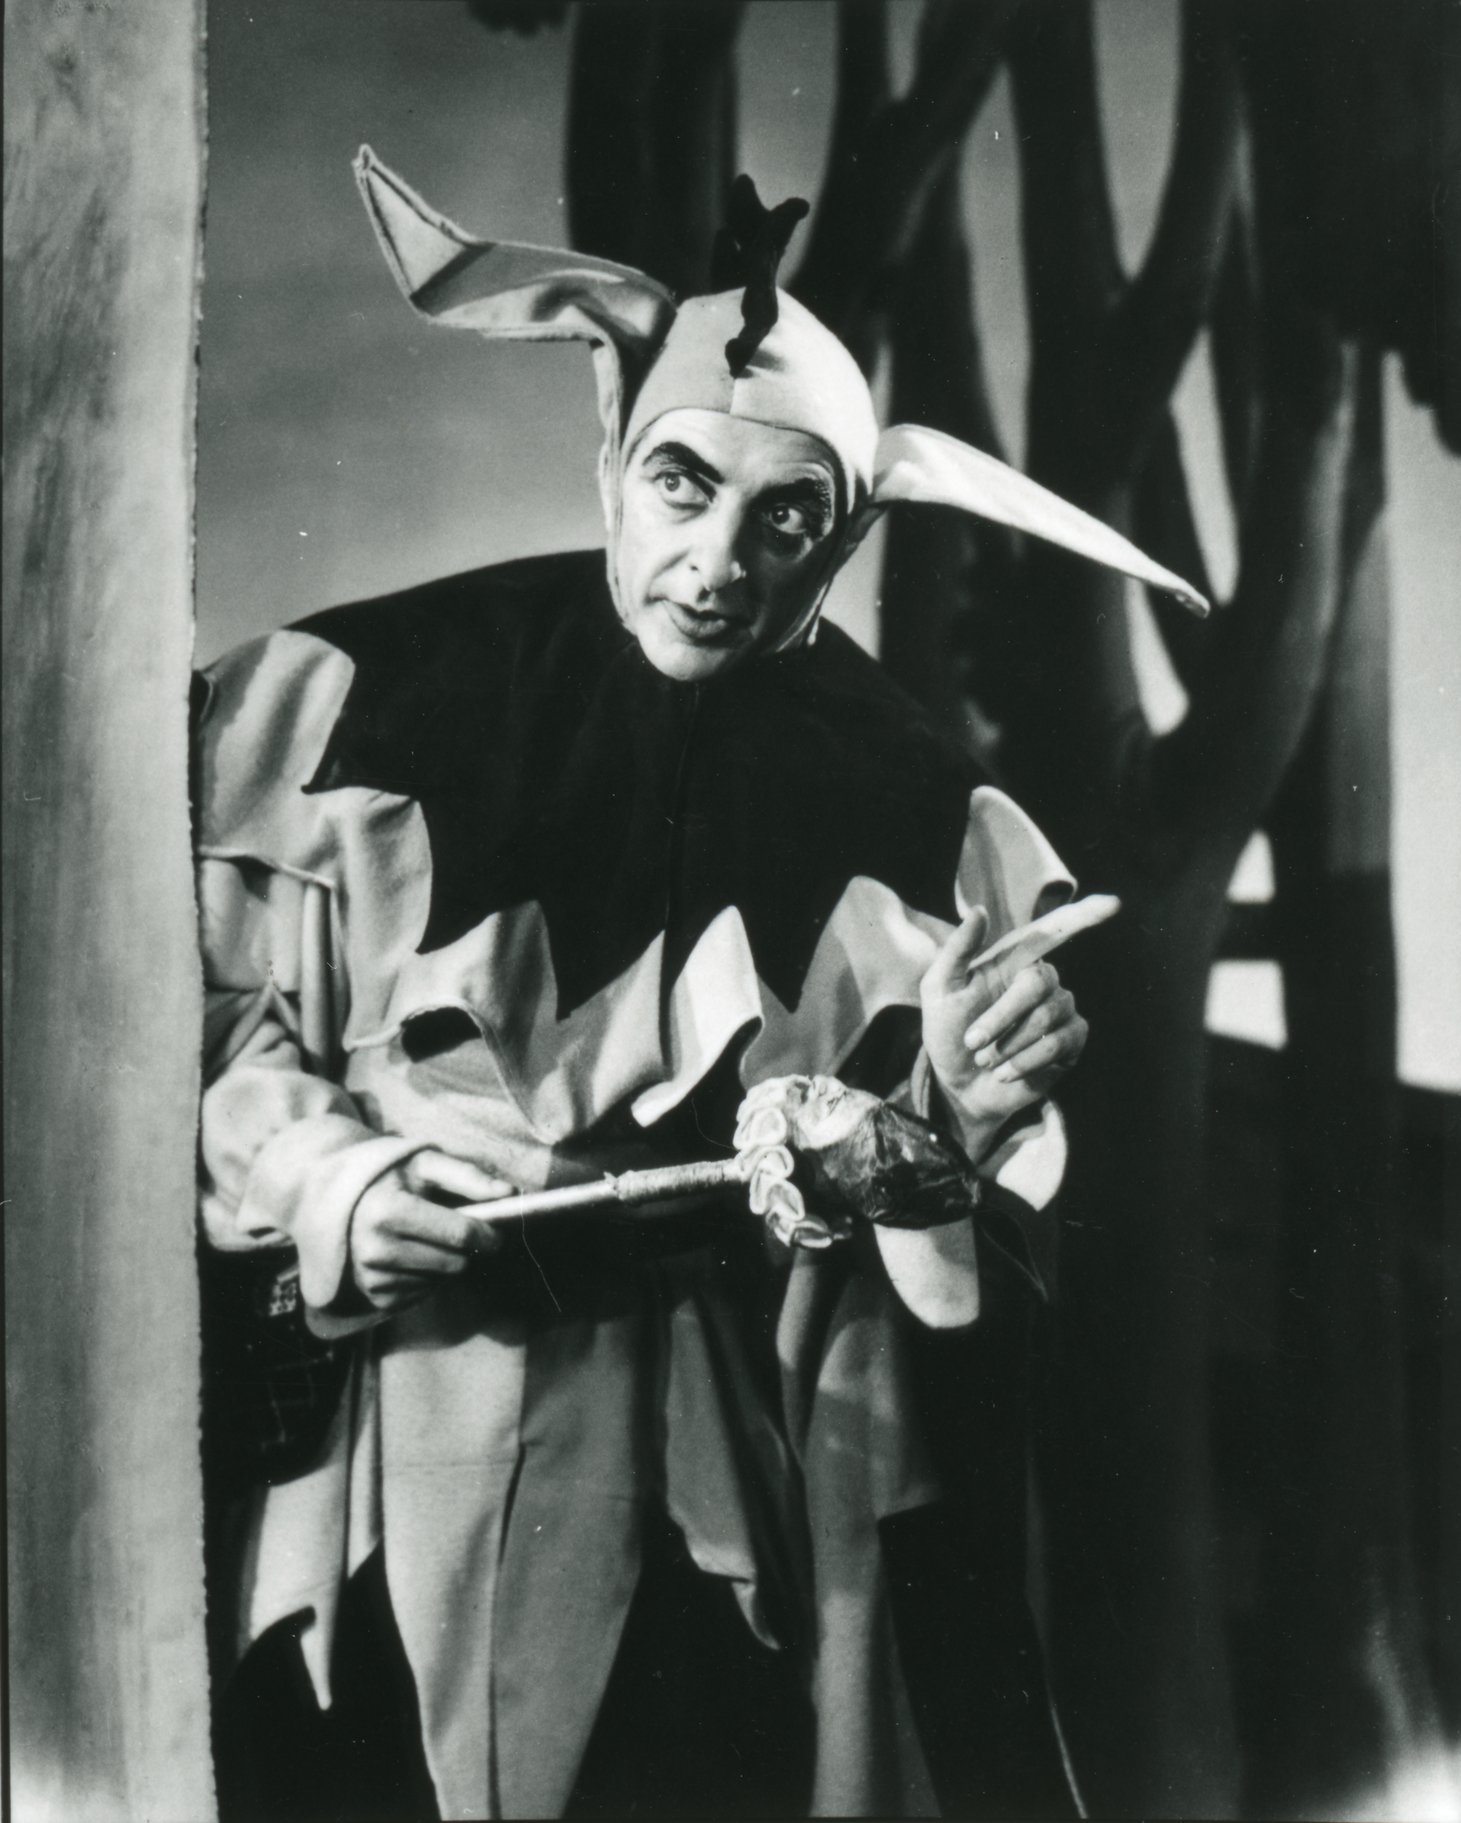 A man in a jester's outfit.